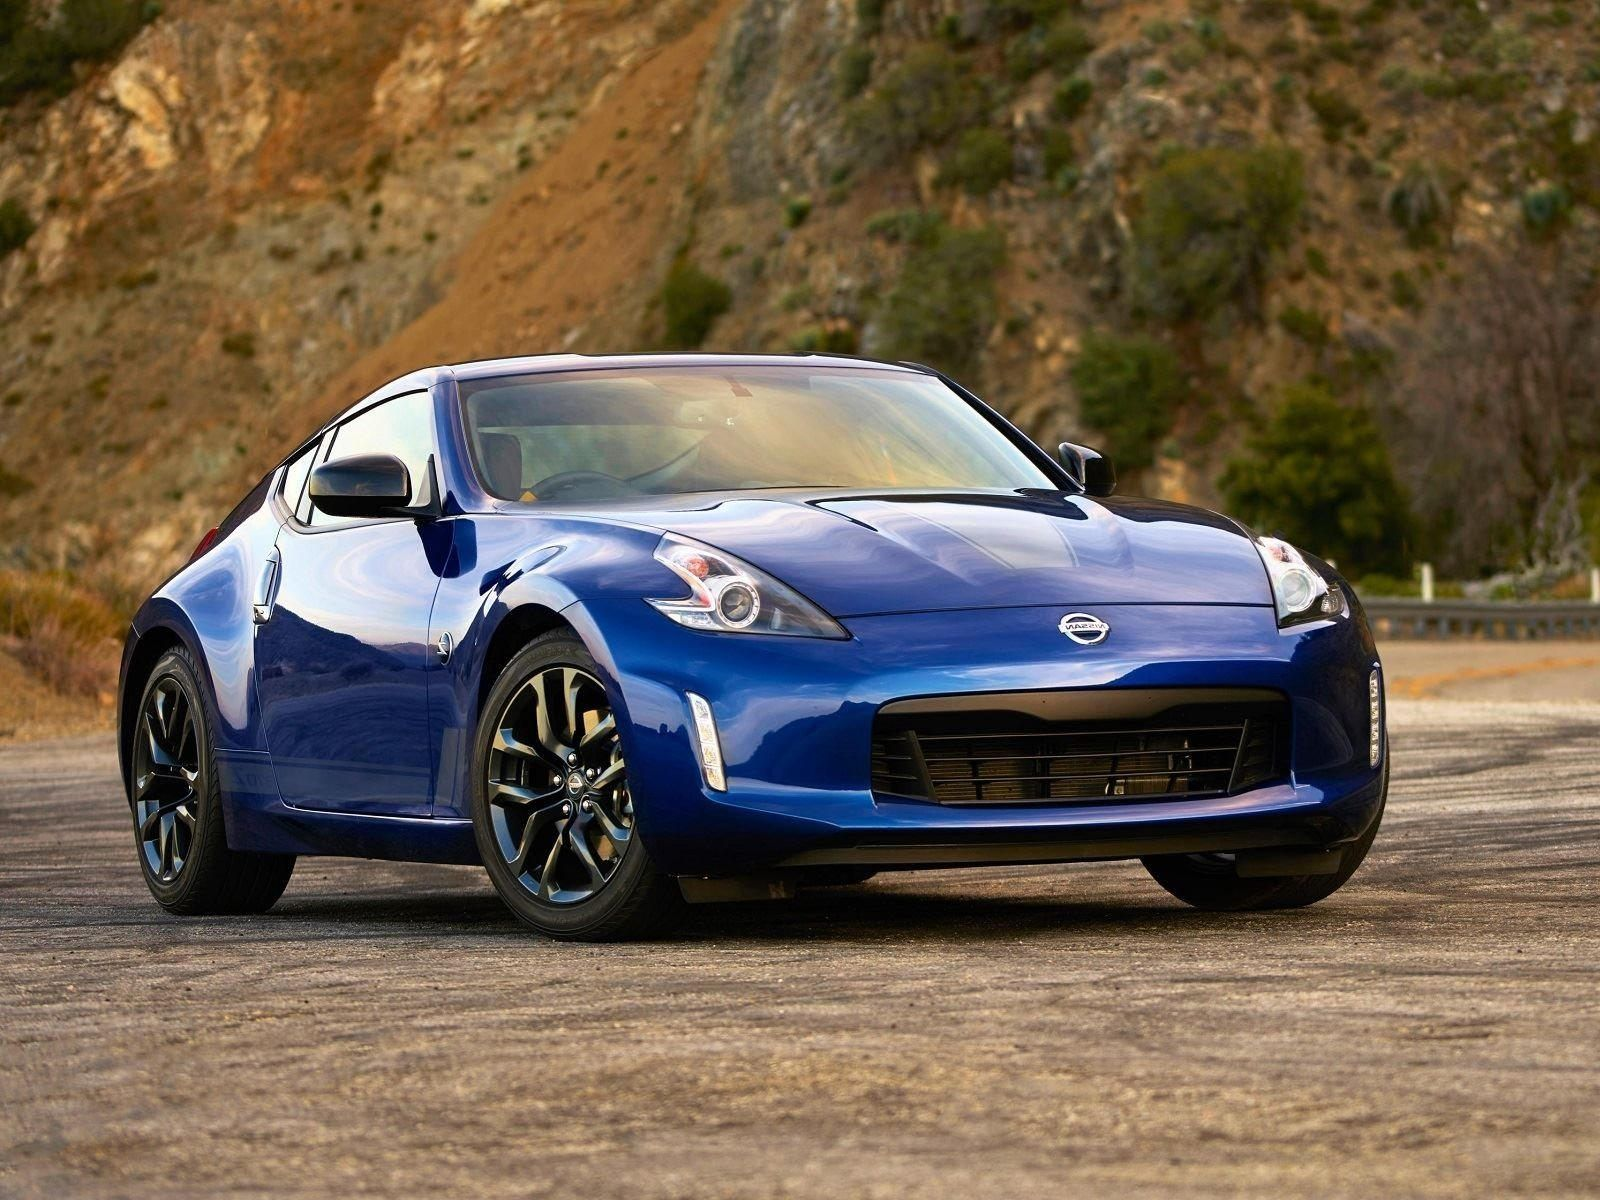 2020 Nissan 370z Nismo Pictures Release Specs And Review Nissan 370z Nissan 370z Nismo Nissan